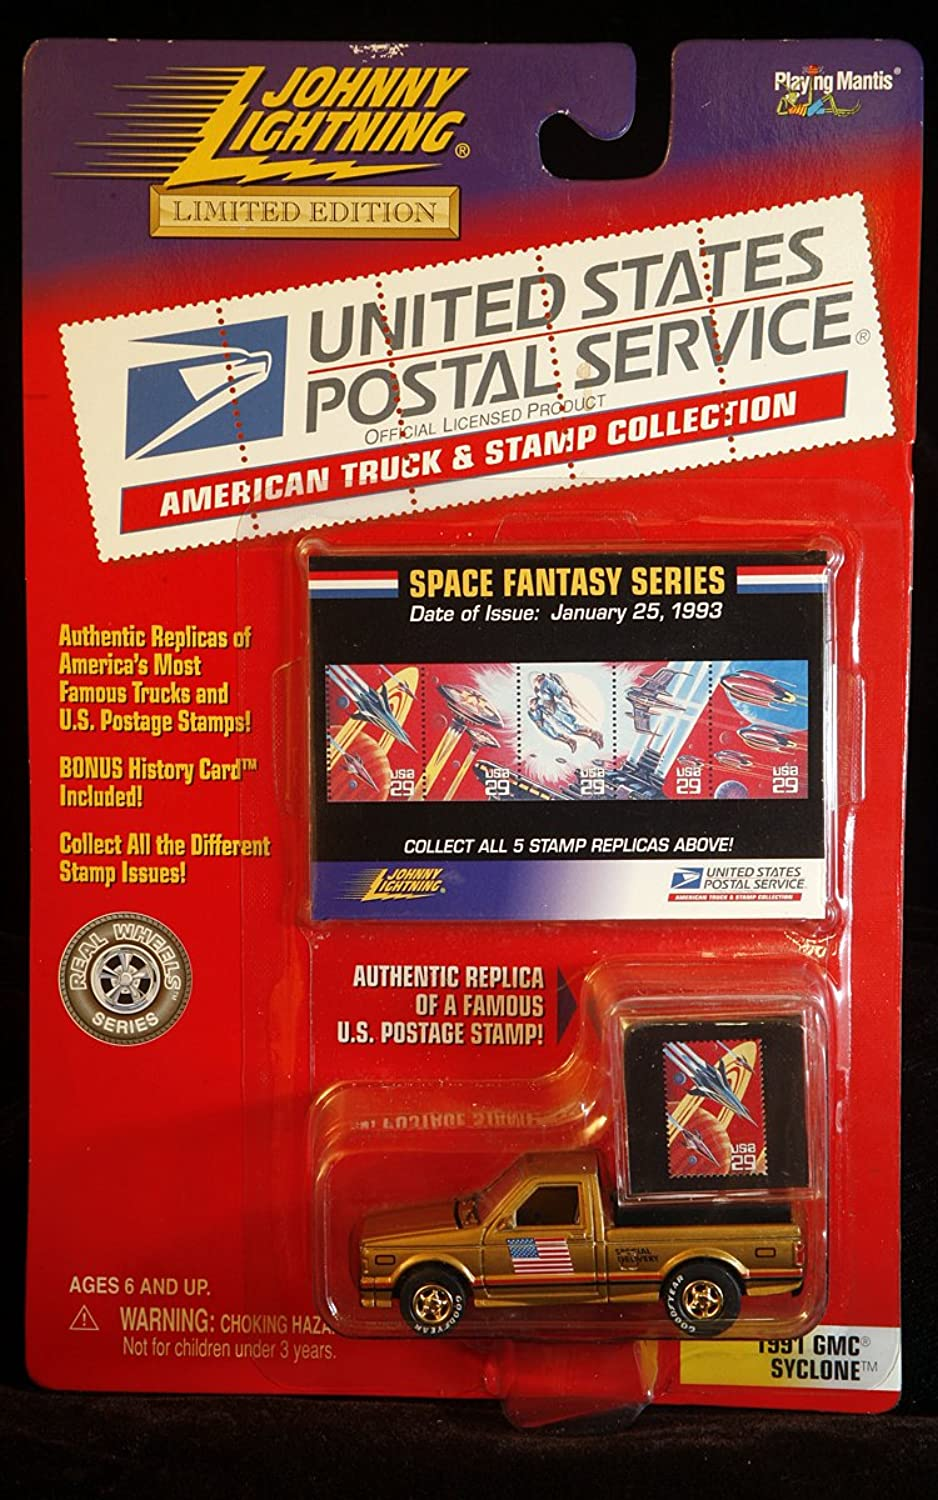 Johnny Lightning USPS American Truck & Stamp Collection 1991 GMC Syclone Space Fantasy Series by Jphnny Lightning